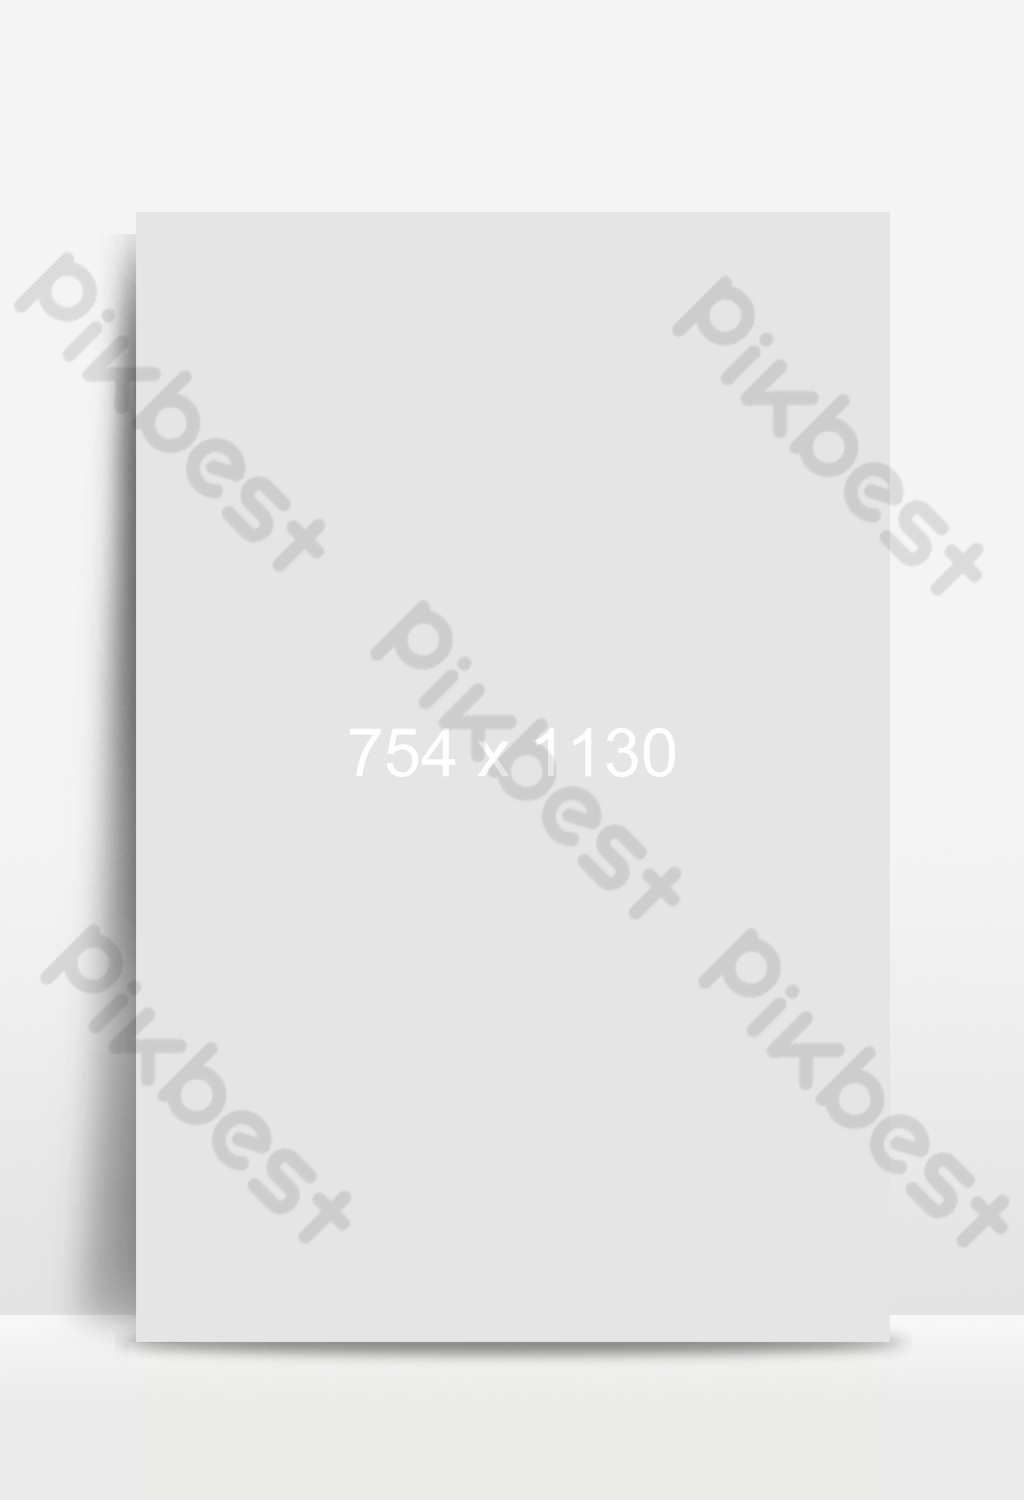 Chinese Wedding Invitation Background Backgrounds Psd Free Download Pikbest